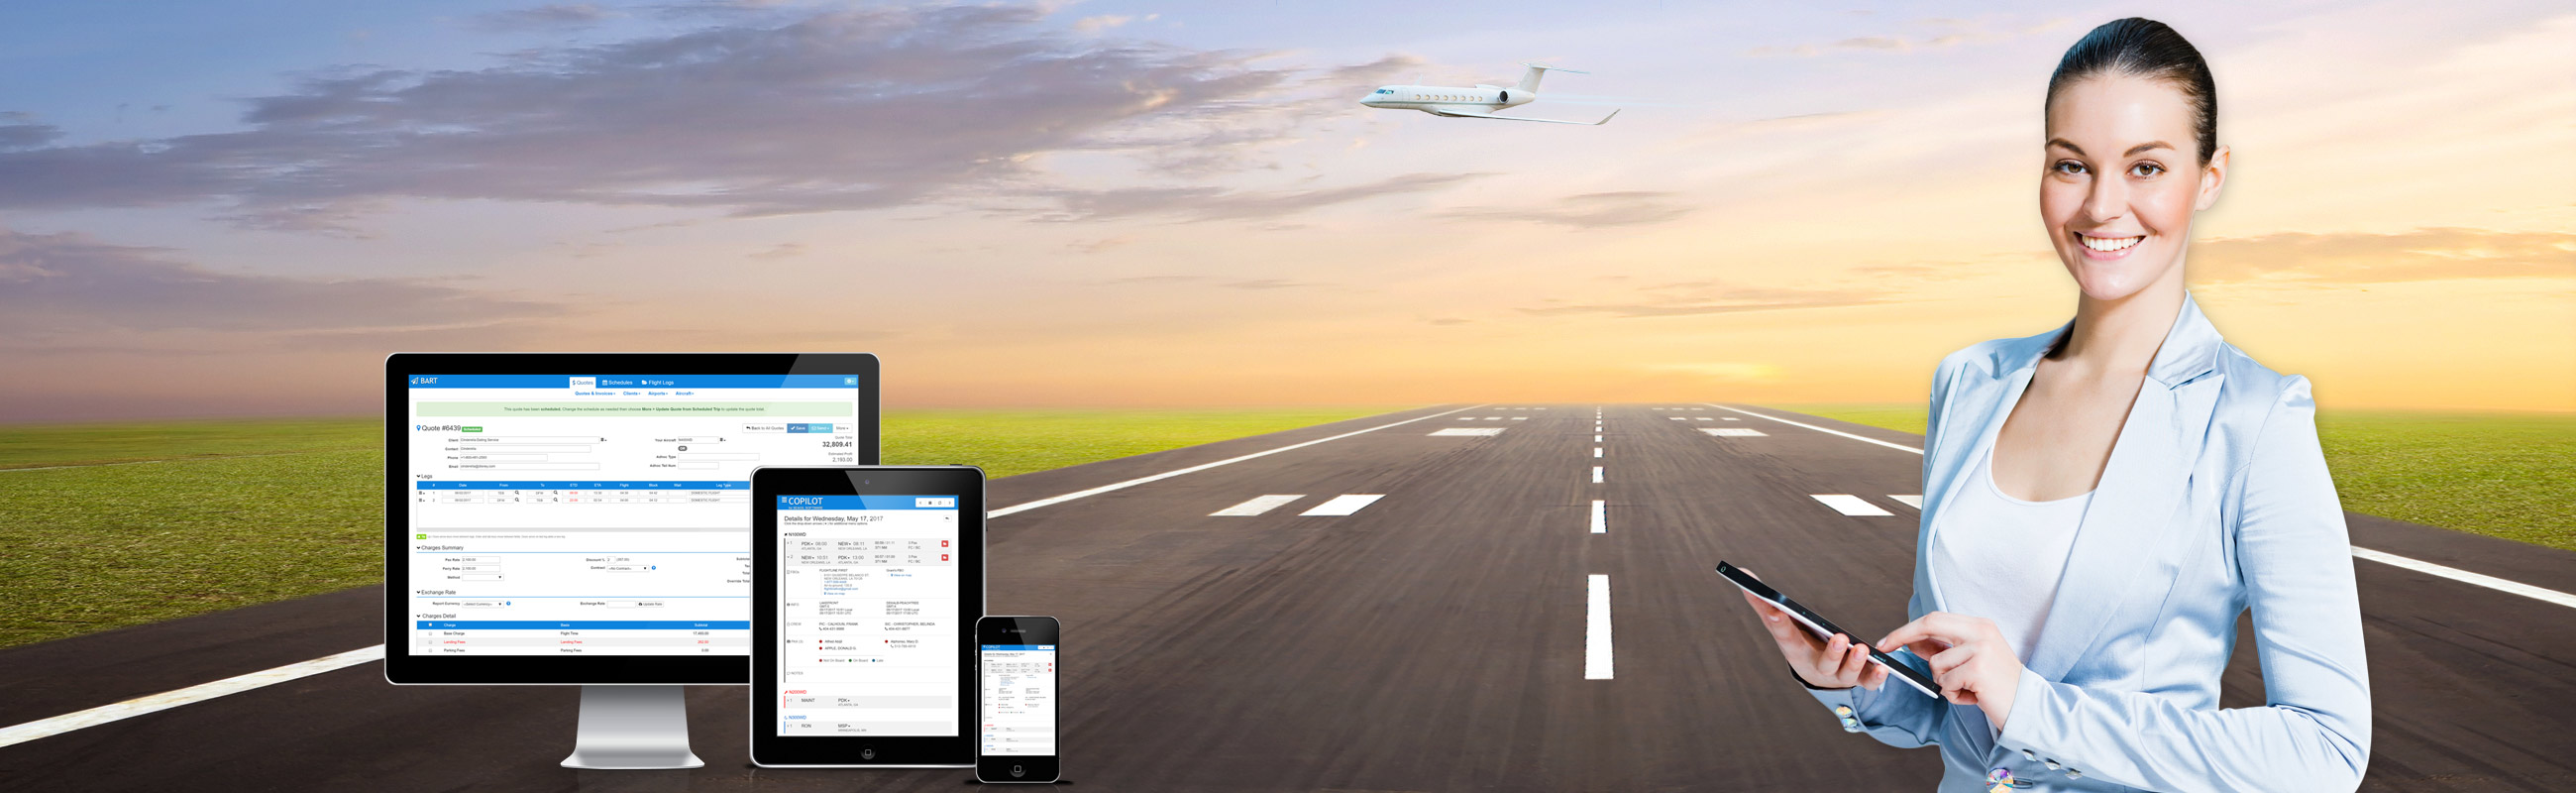 Private Aviation Software